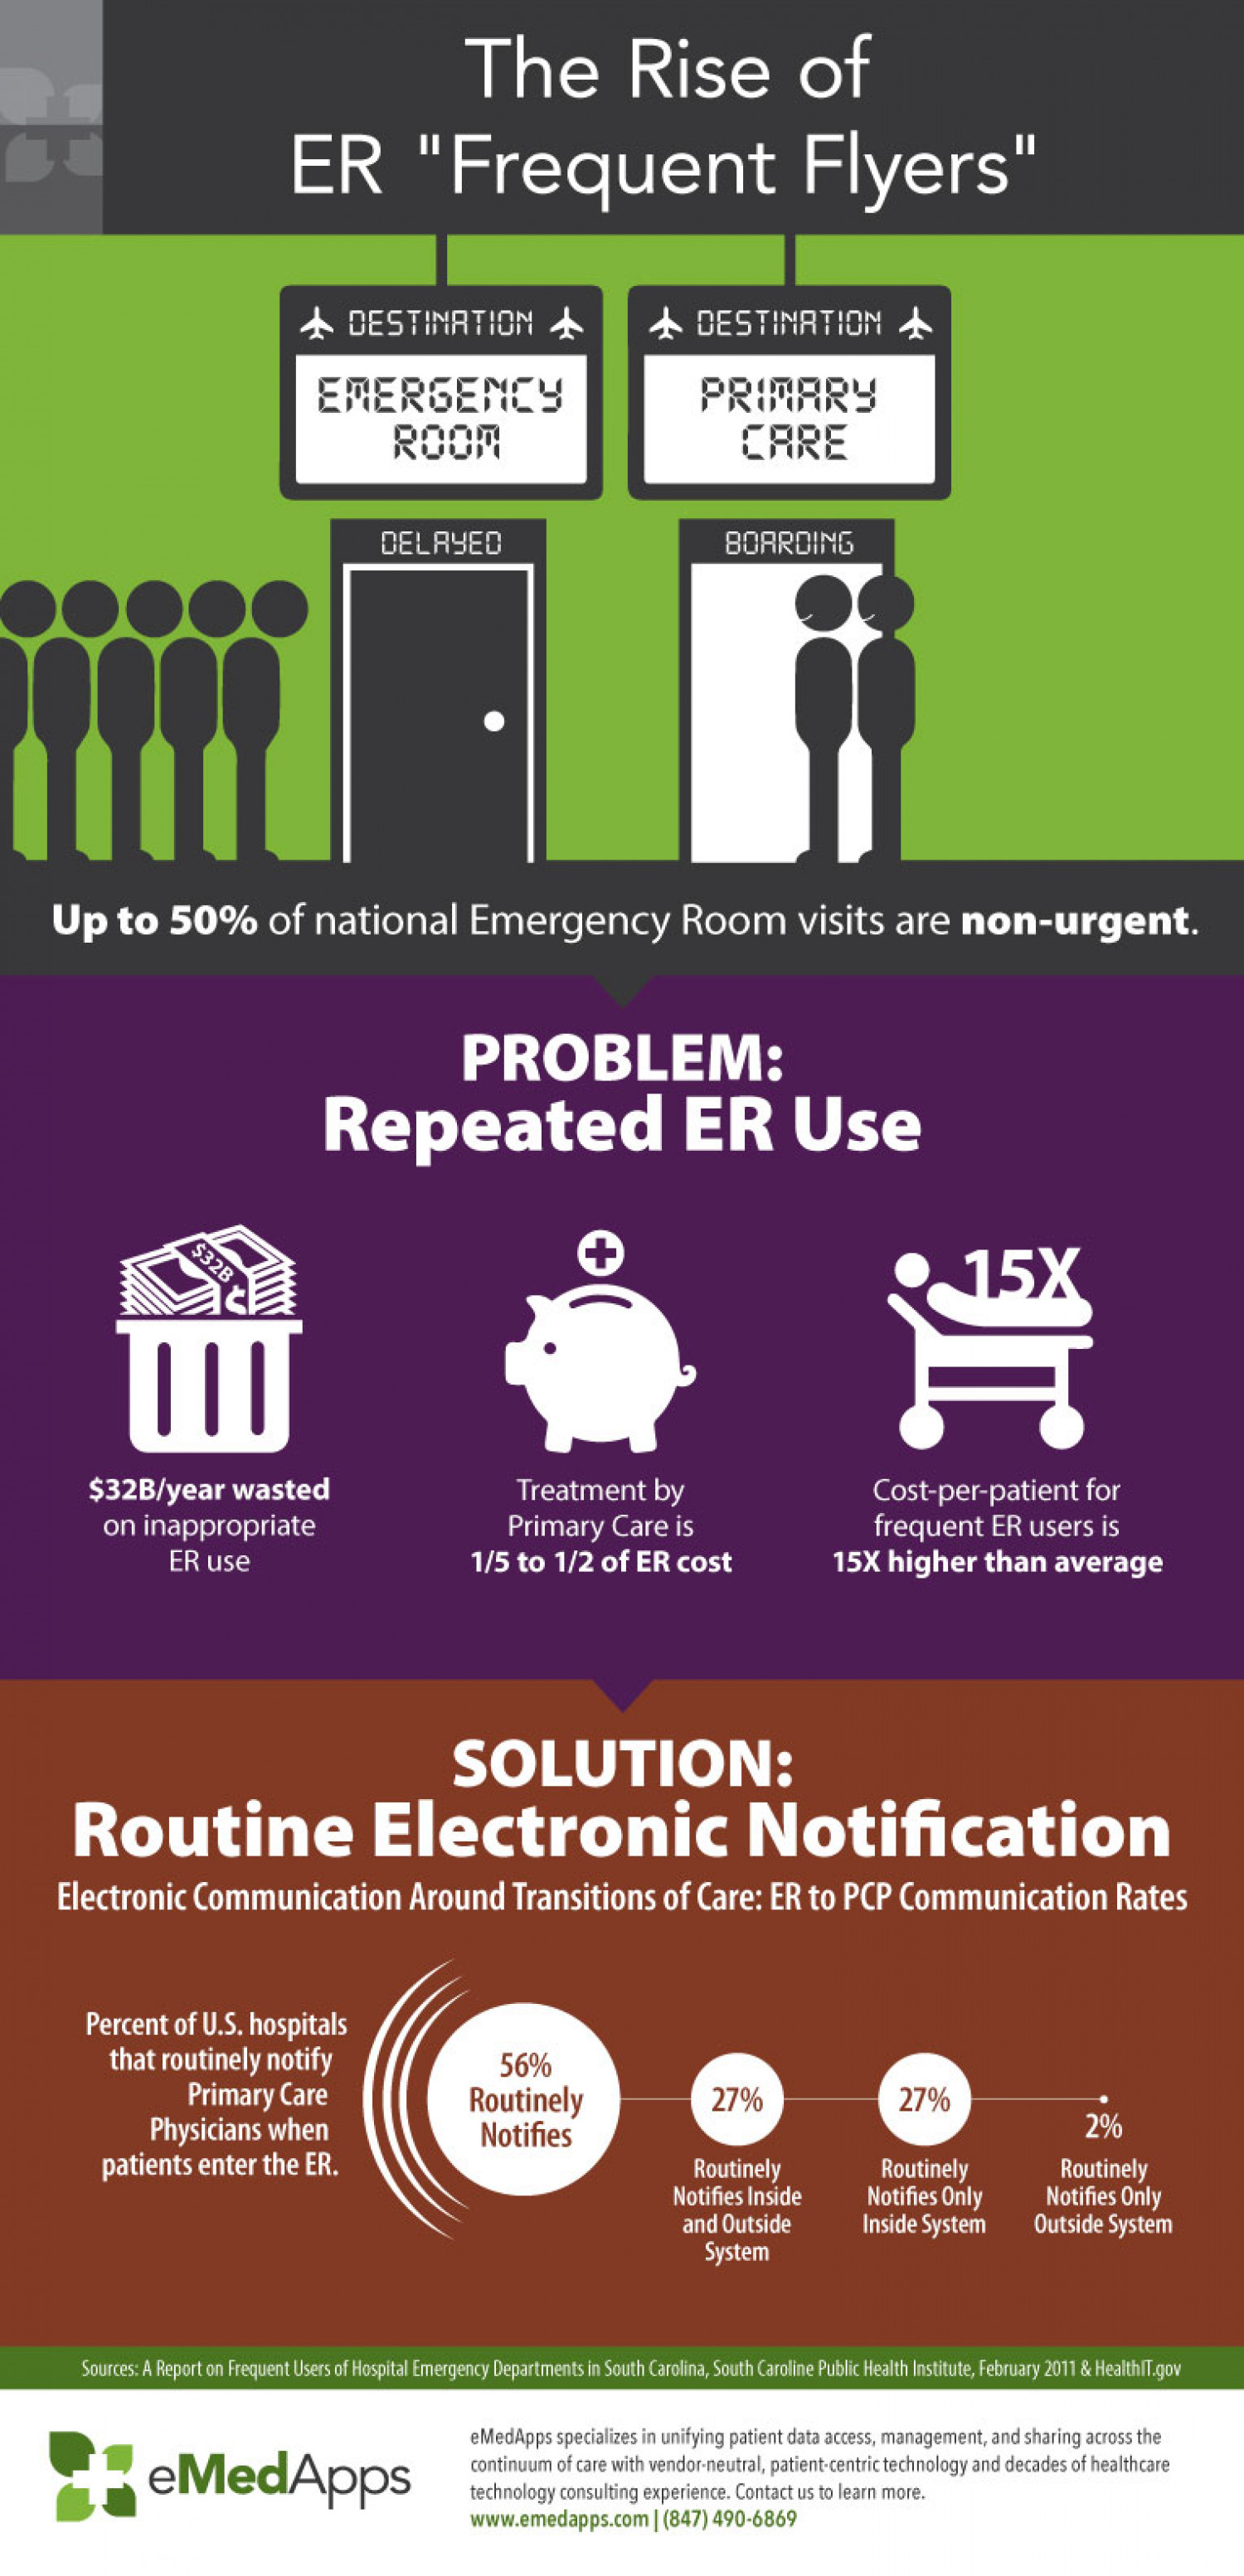 """The Rise of ER """"Frequent Flyers"""" Infographic"""